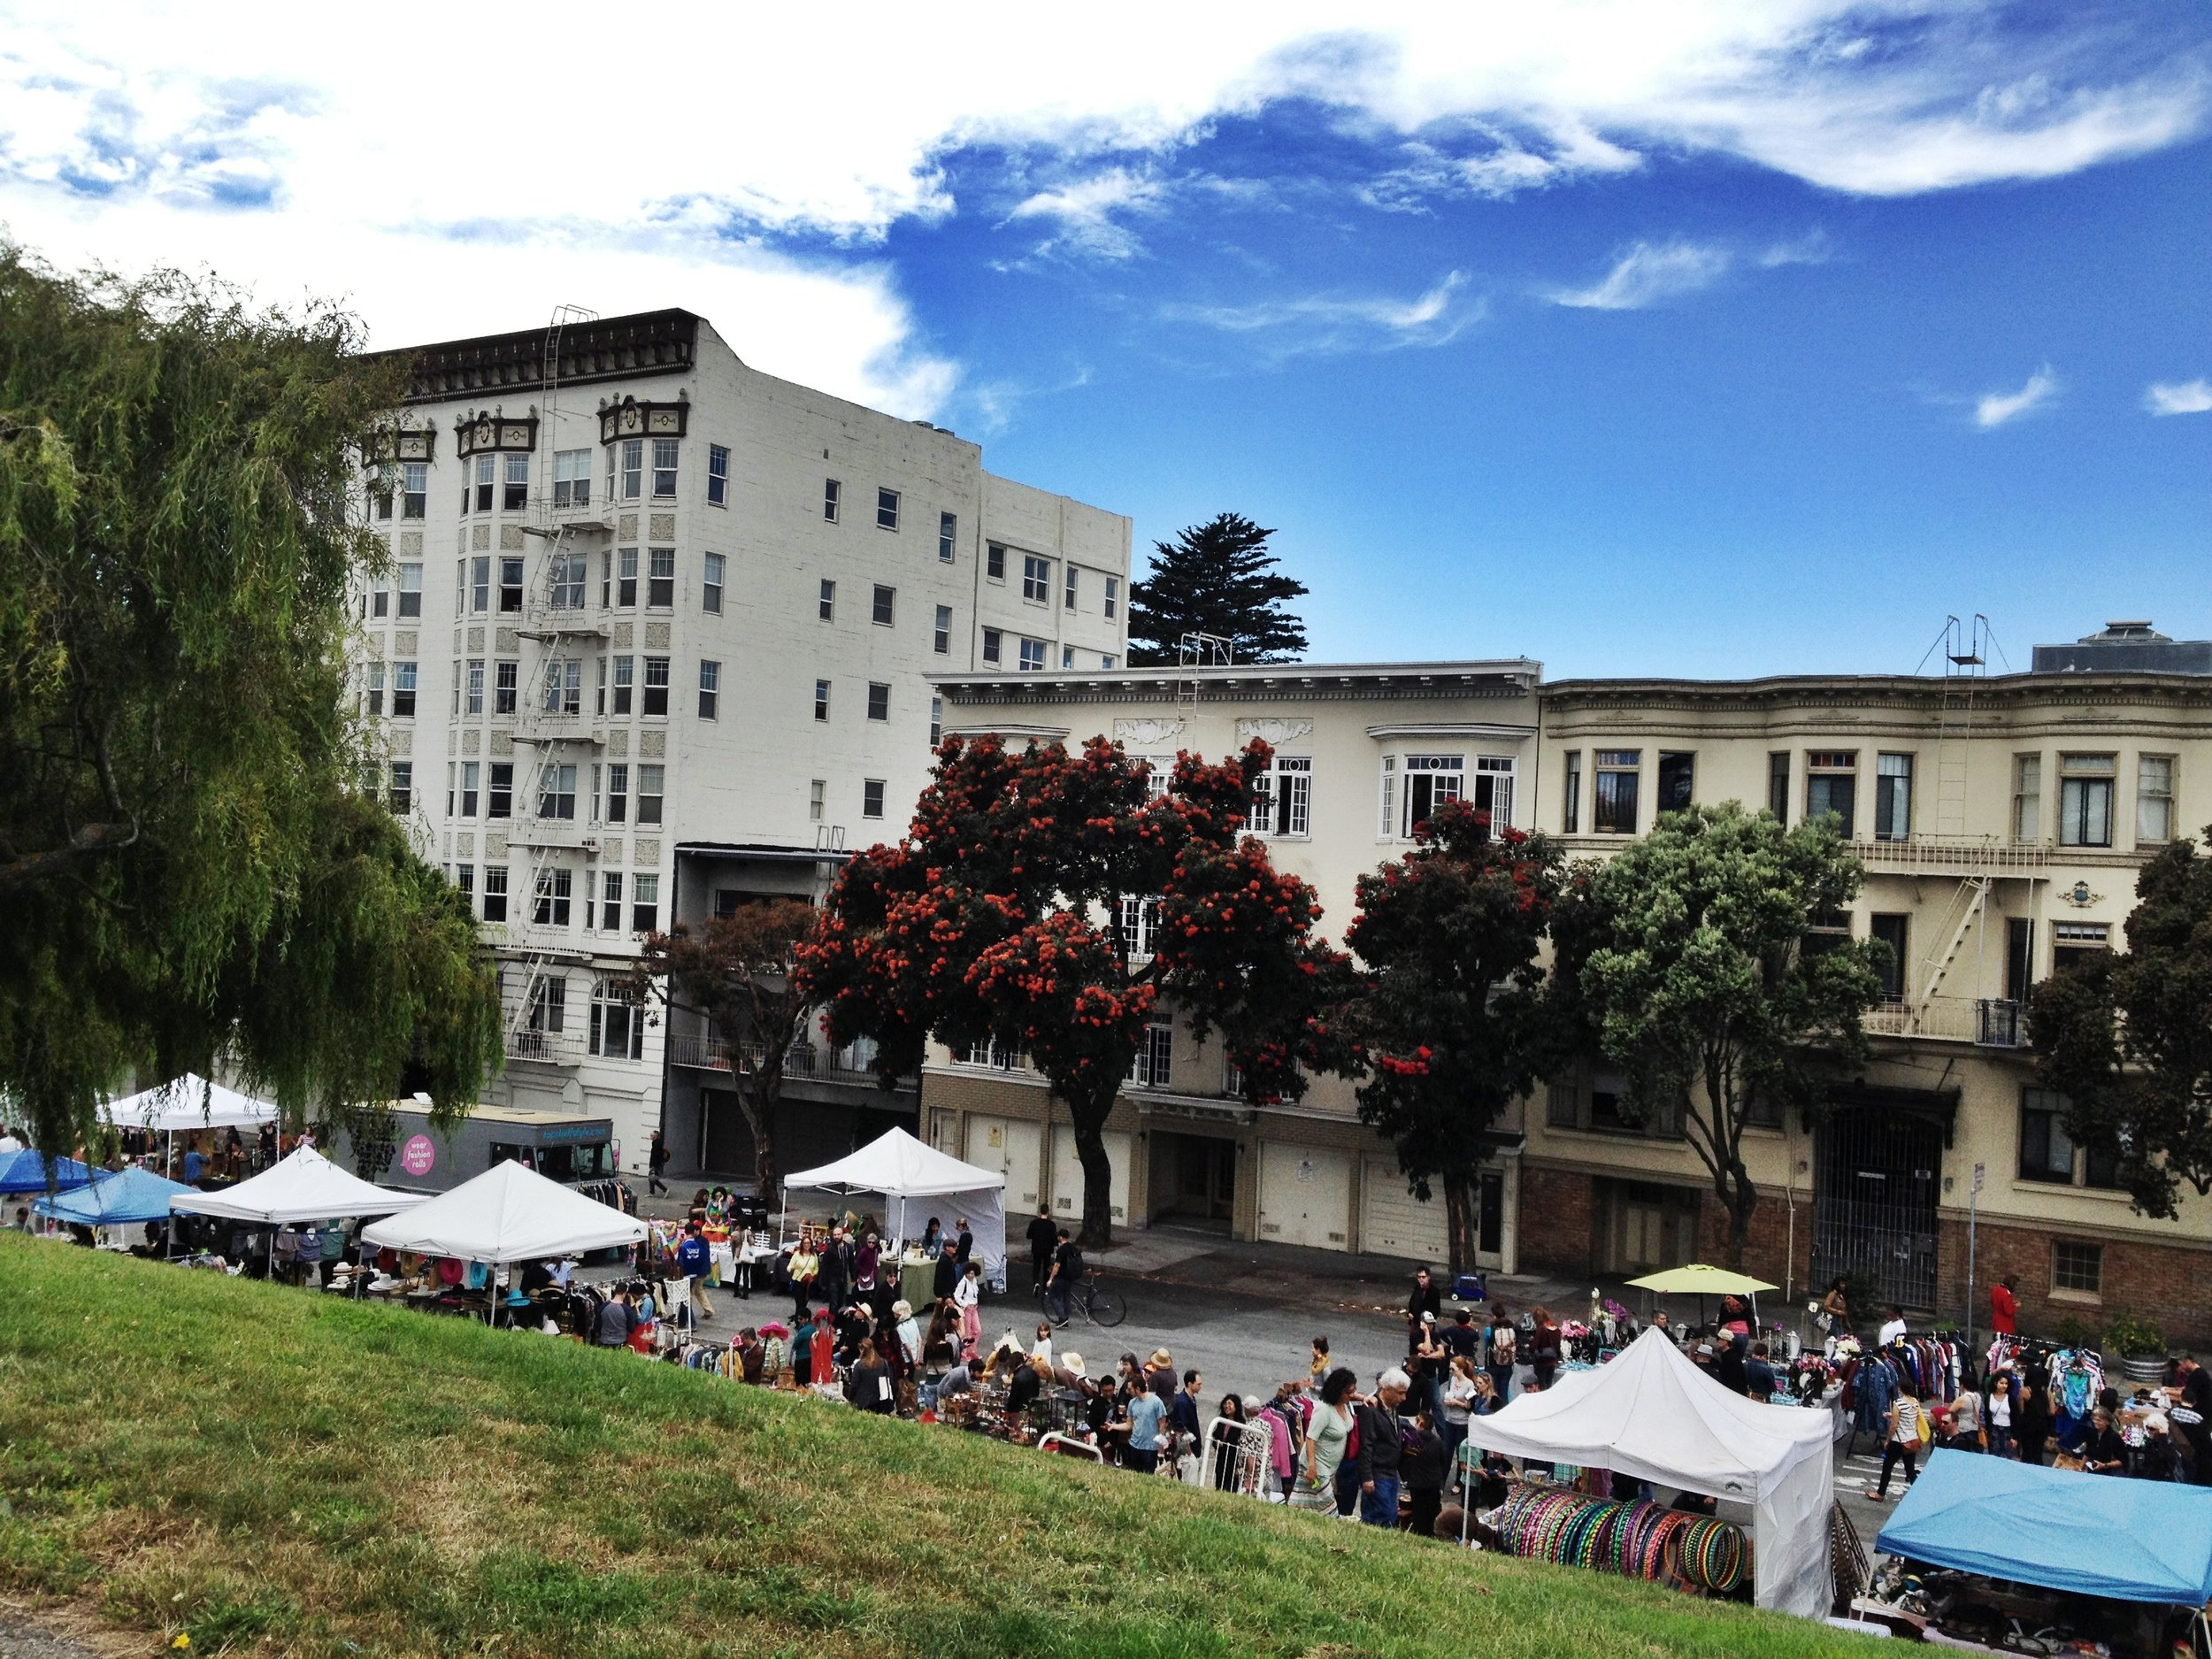 This year's Alamo Square Flea Market!